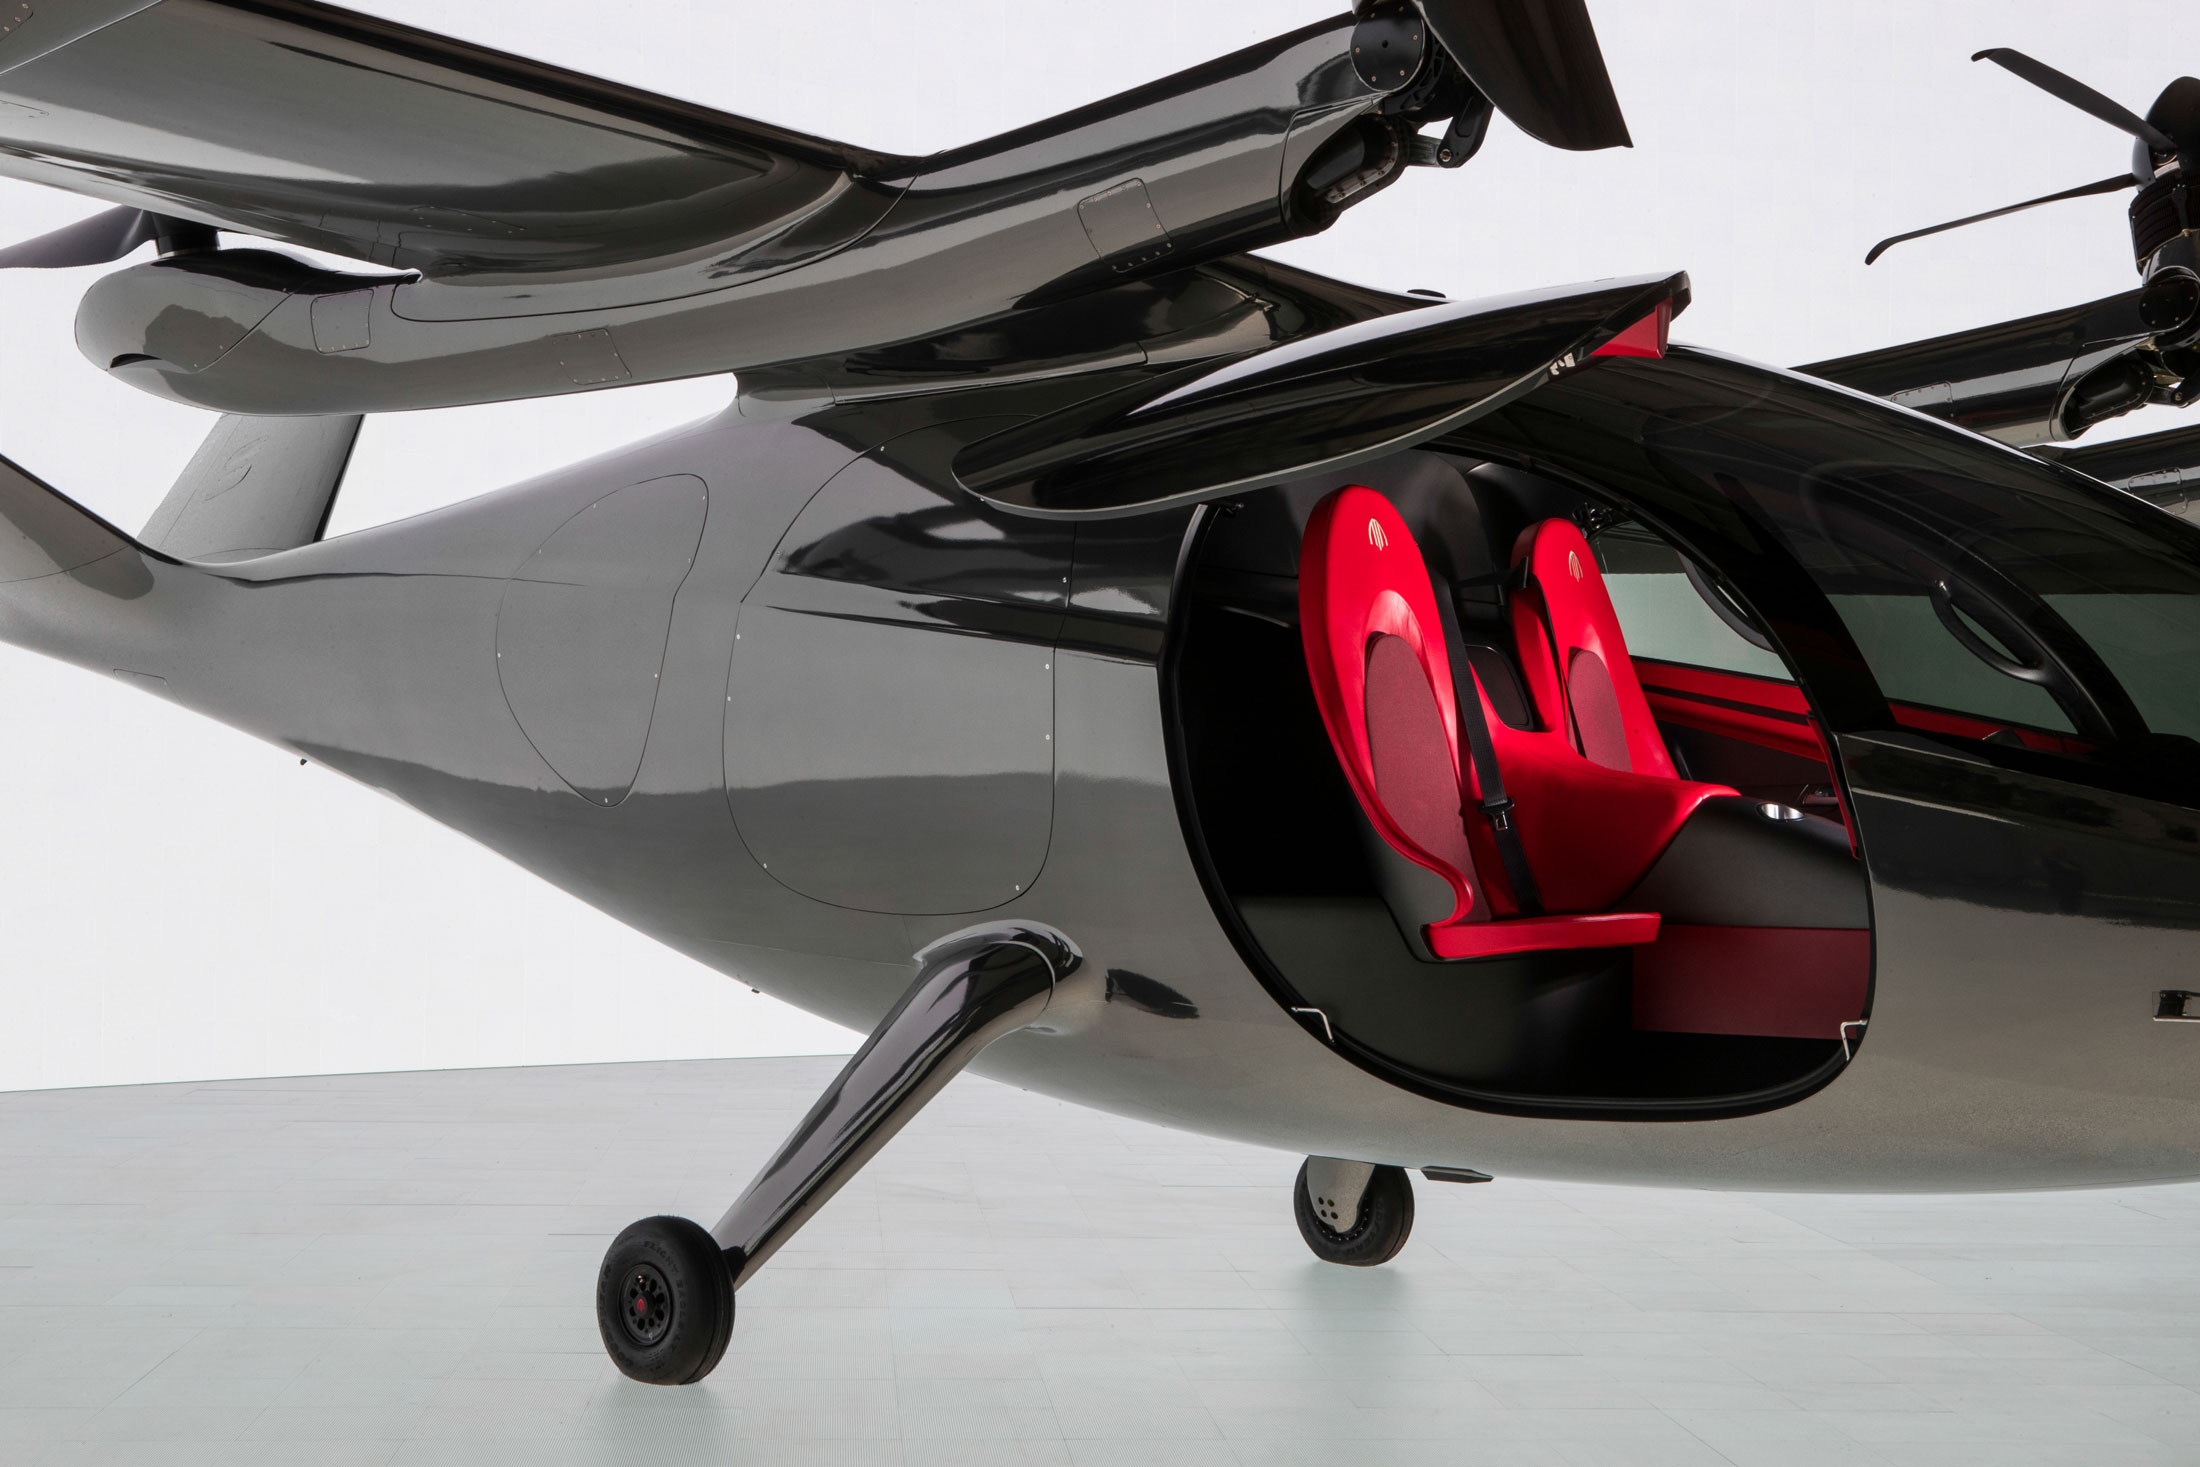 relates to Electric Flying Taxi Backed by United Airlines Unveiled in L.A.